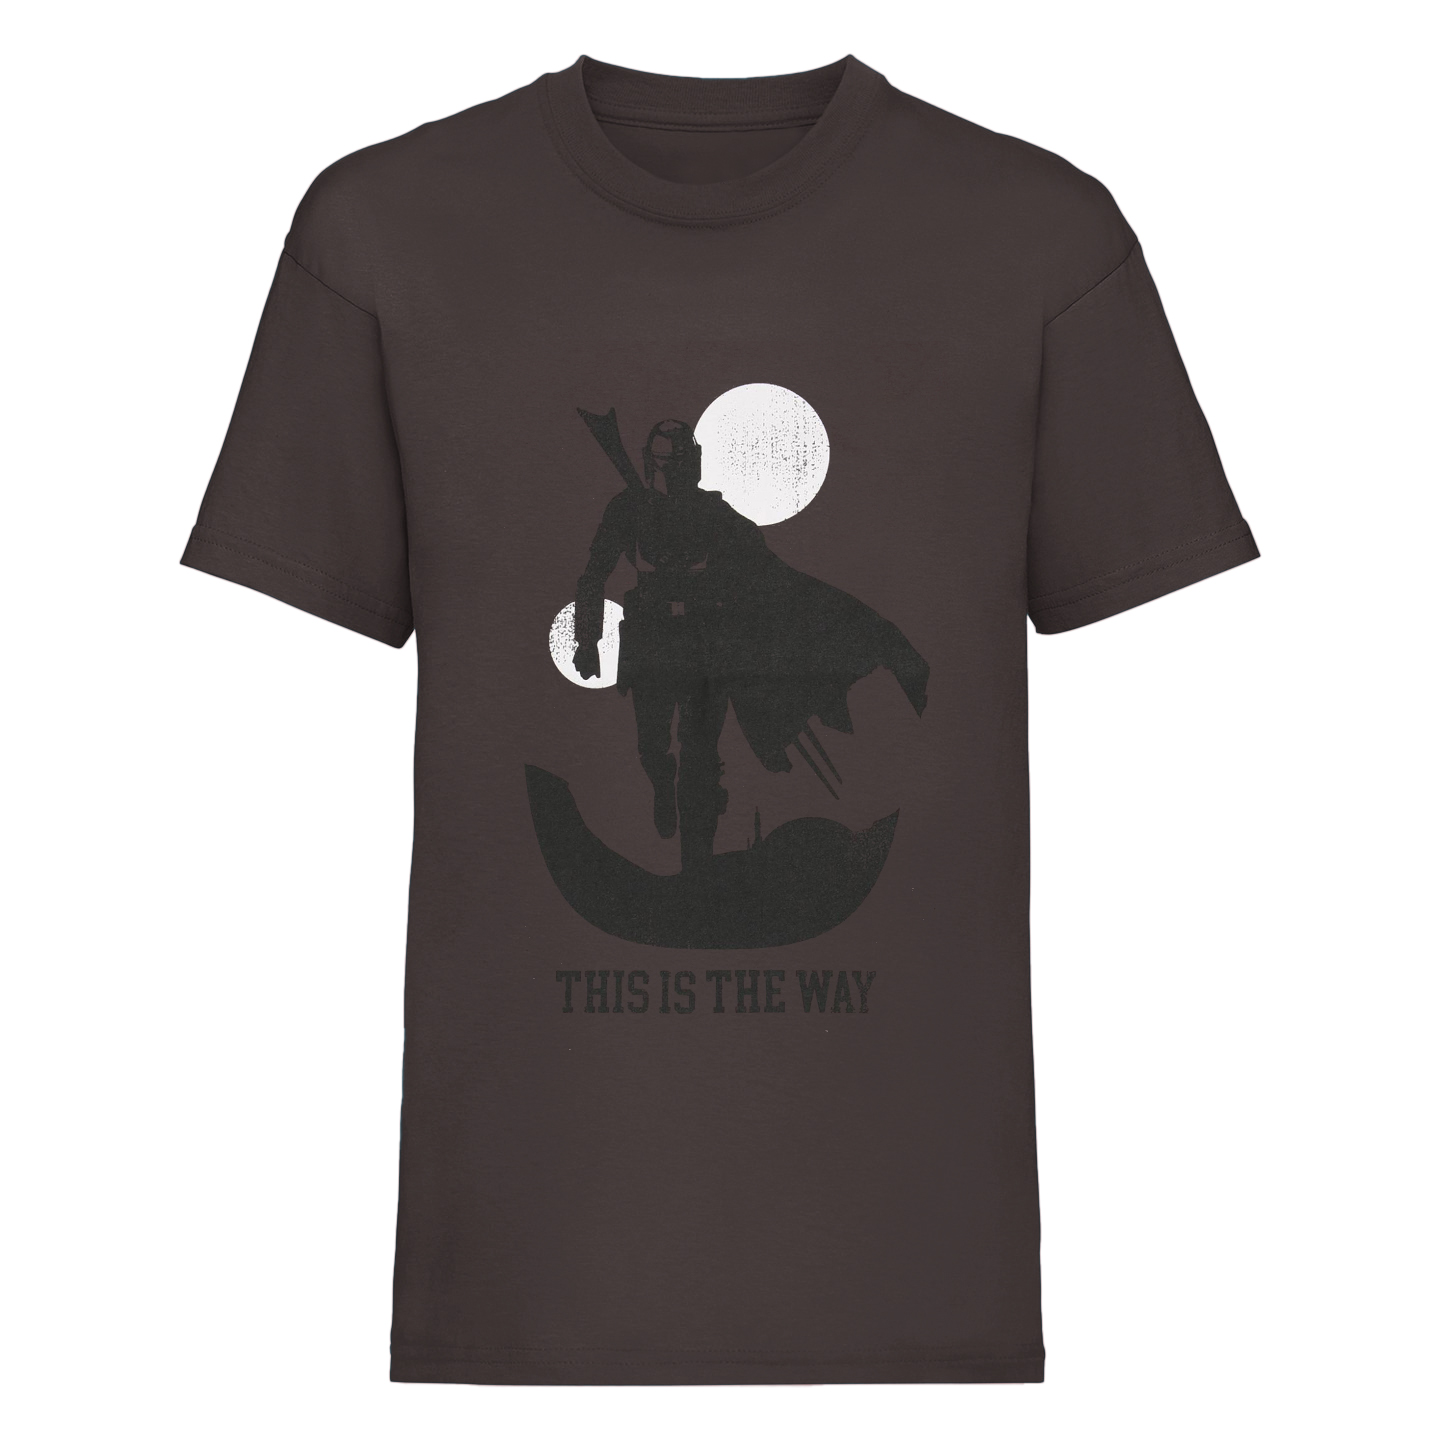 Star Wars: The Mandalorian Mens This Is The Way T-Shirt (M) (Charcoal)